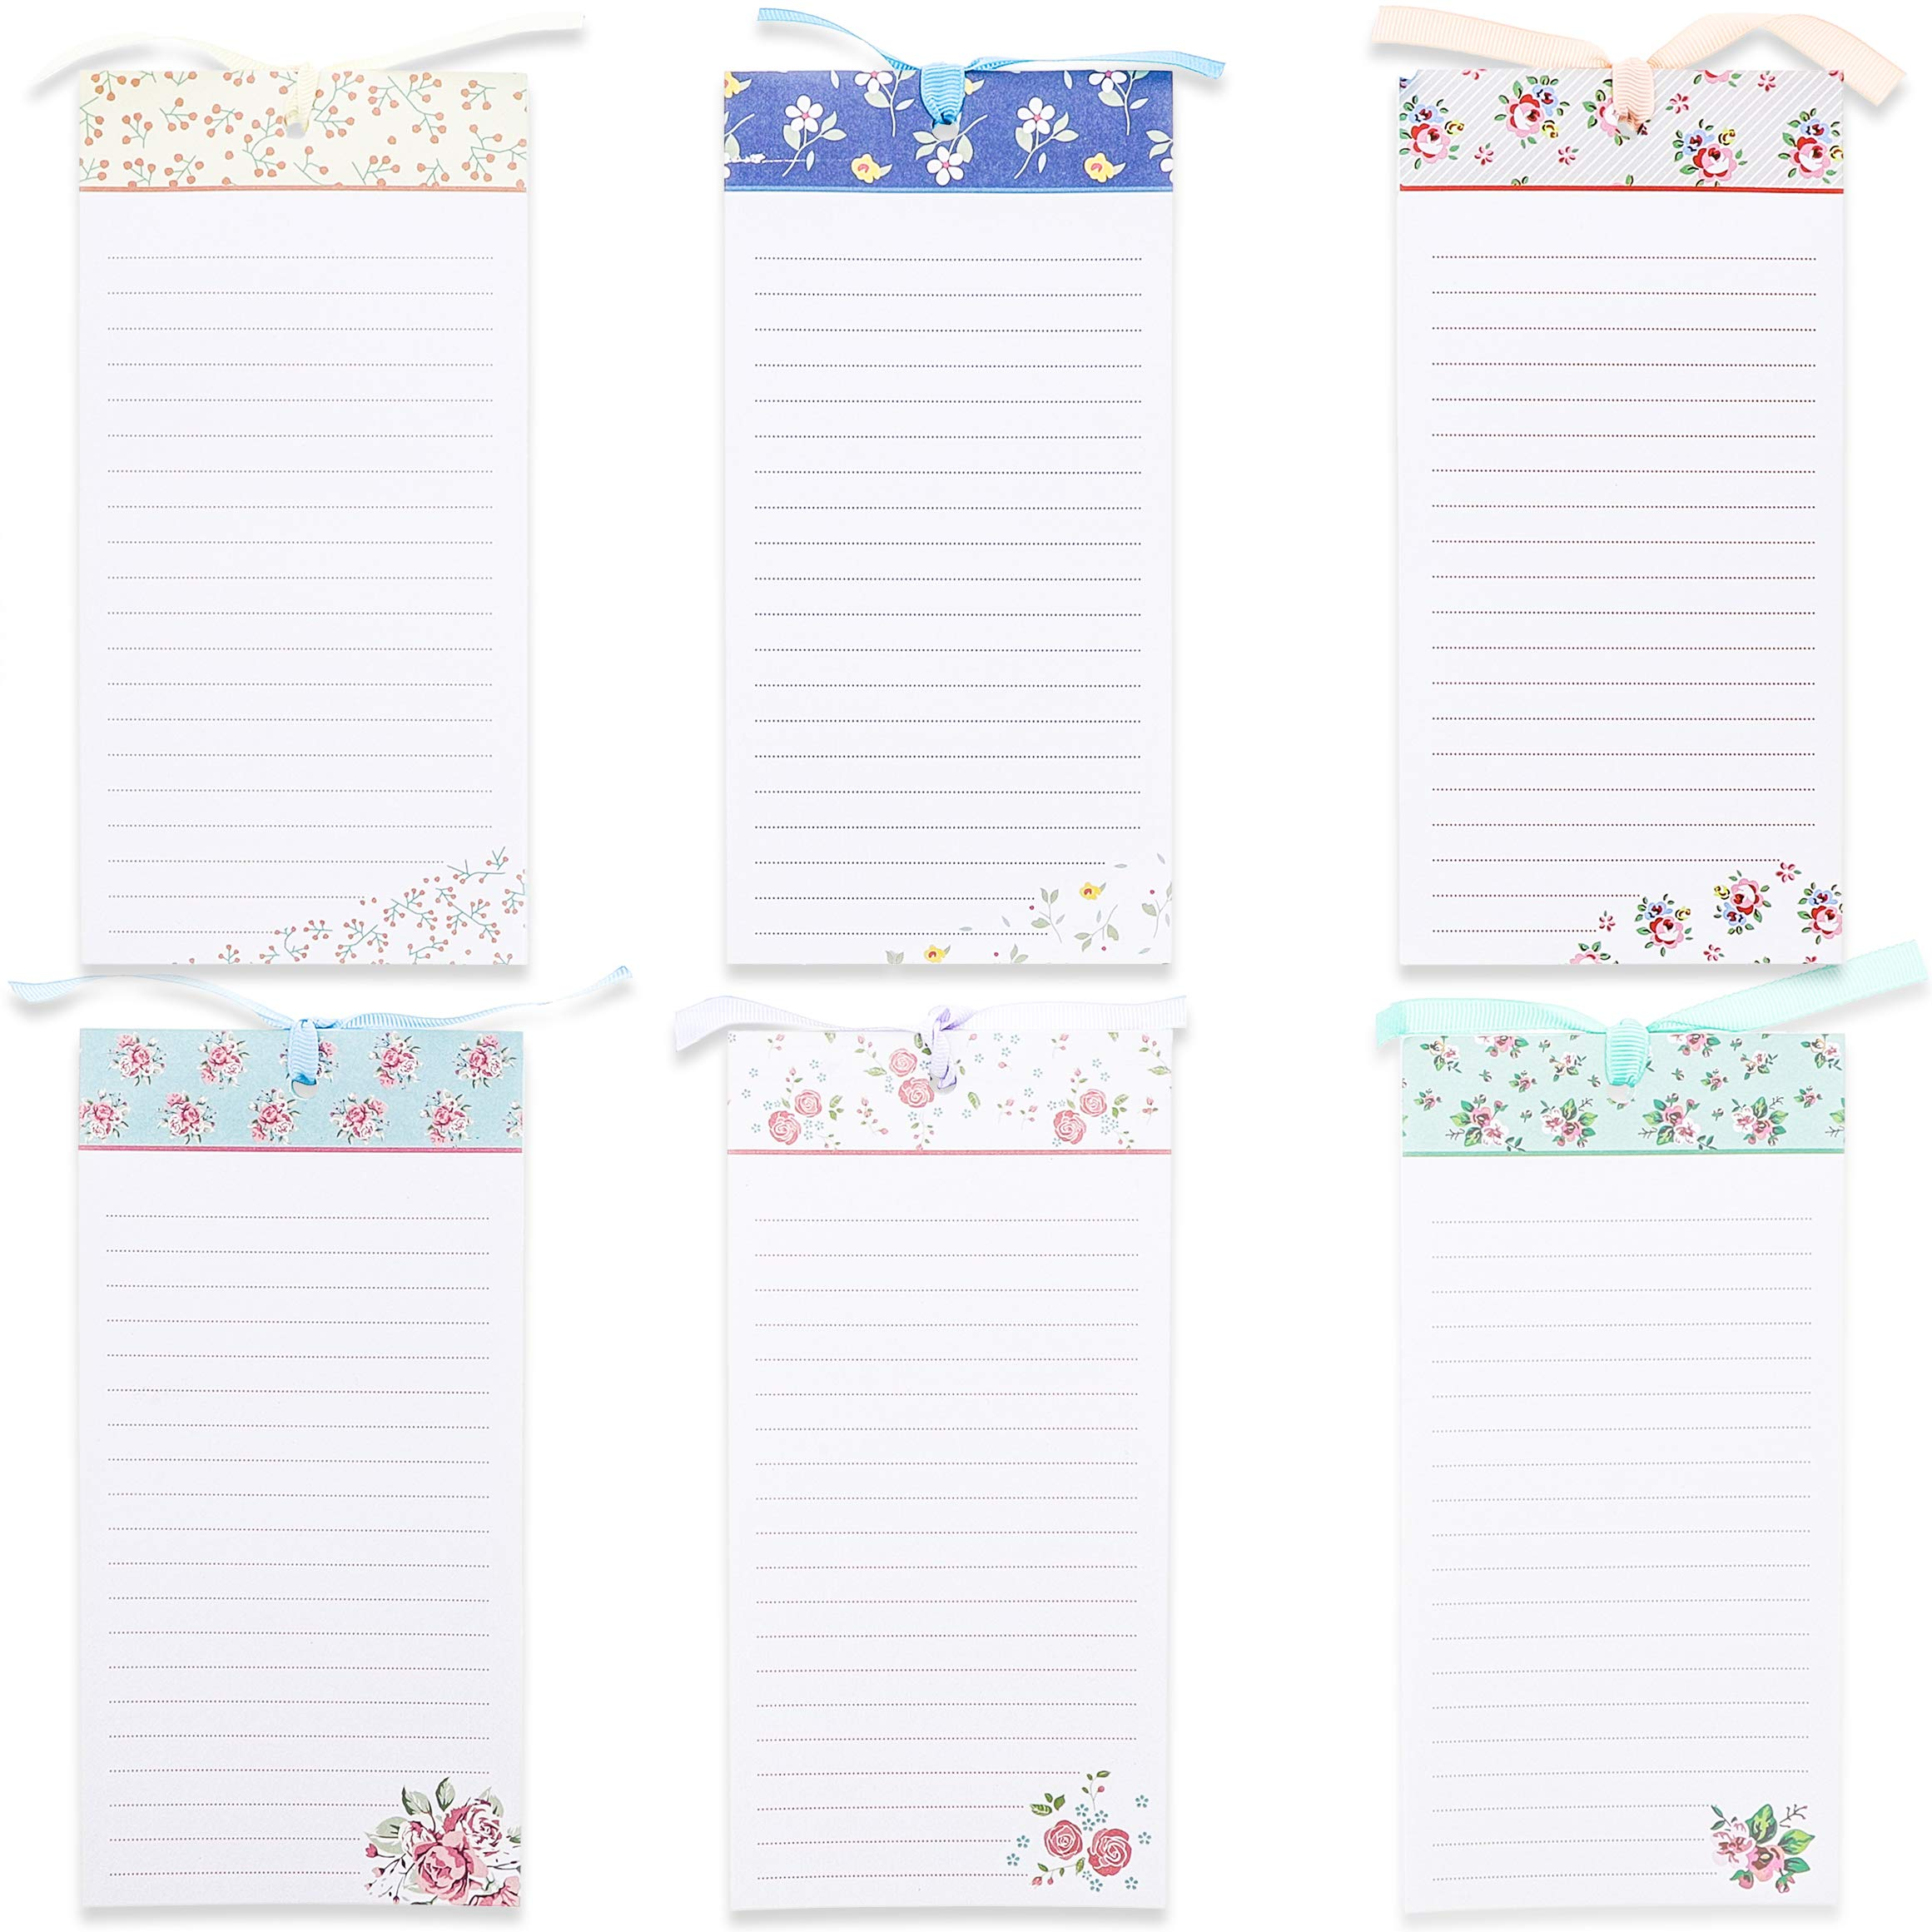 To-Do-List Notepad - 6-Pack Magnetic Notepads, Fridge Grocery List Magnet Memo Pad for Shopping, To Do List, Reminders, House Chores, Assorted Flower Designs, 60 Sheets Per Pad, 4 x 8 Inches by Juvale